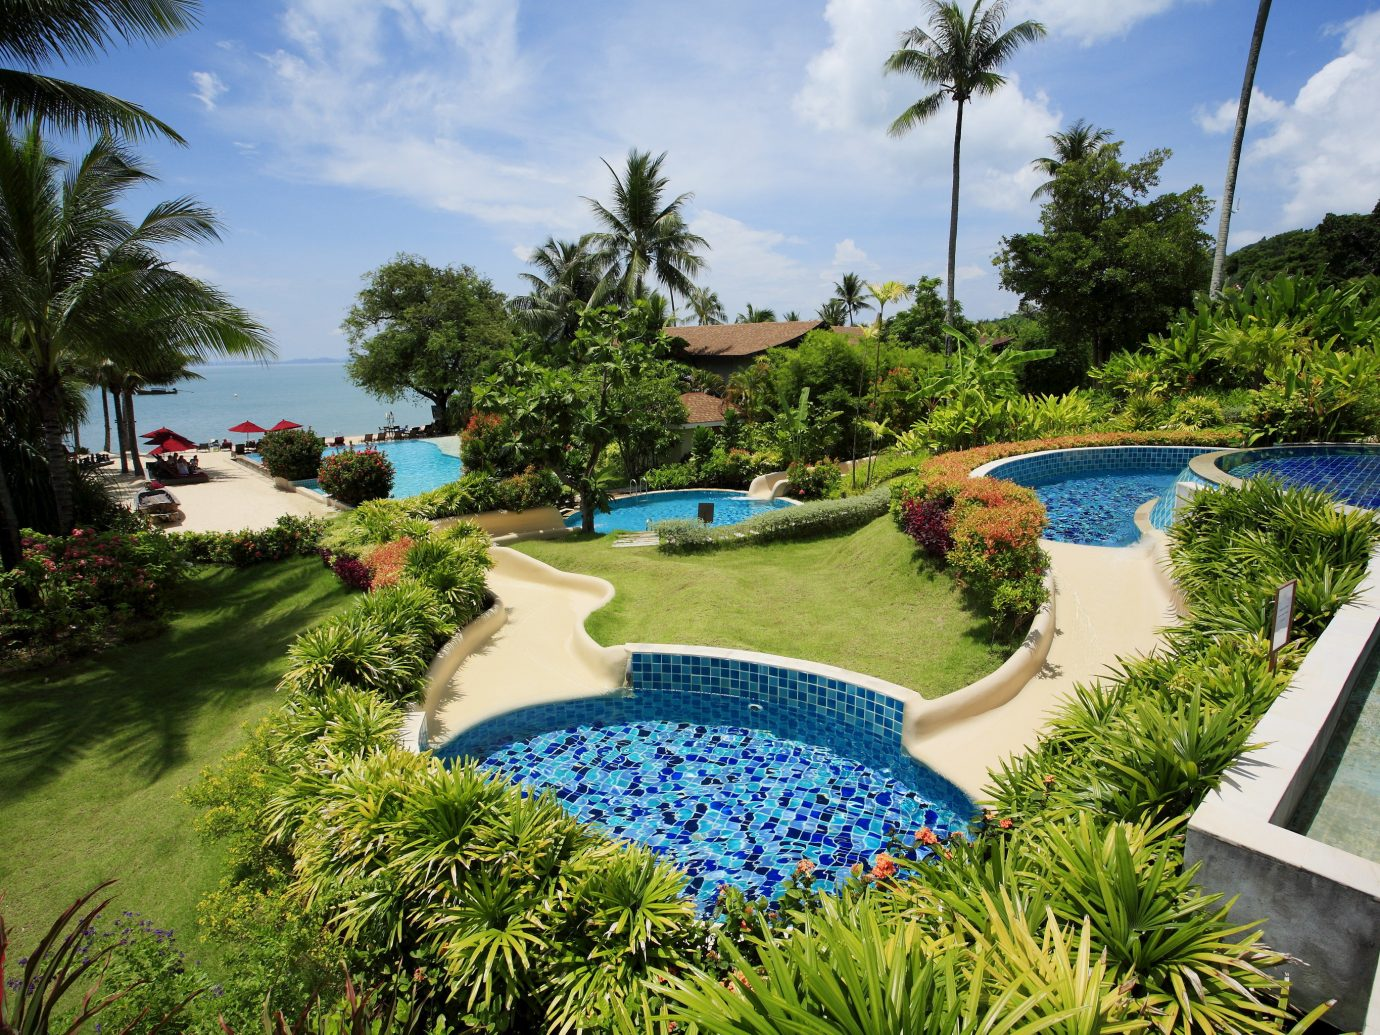 Beach Hotels Phuket Thailand Nature Resort swimming pool leisure property estate majorelle blue palm tree arecales tropics real estate water tourism resort town tree vacation sky landscape Villa caribbean plant landscaping amenity